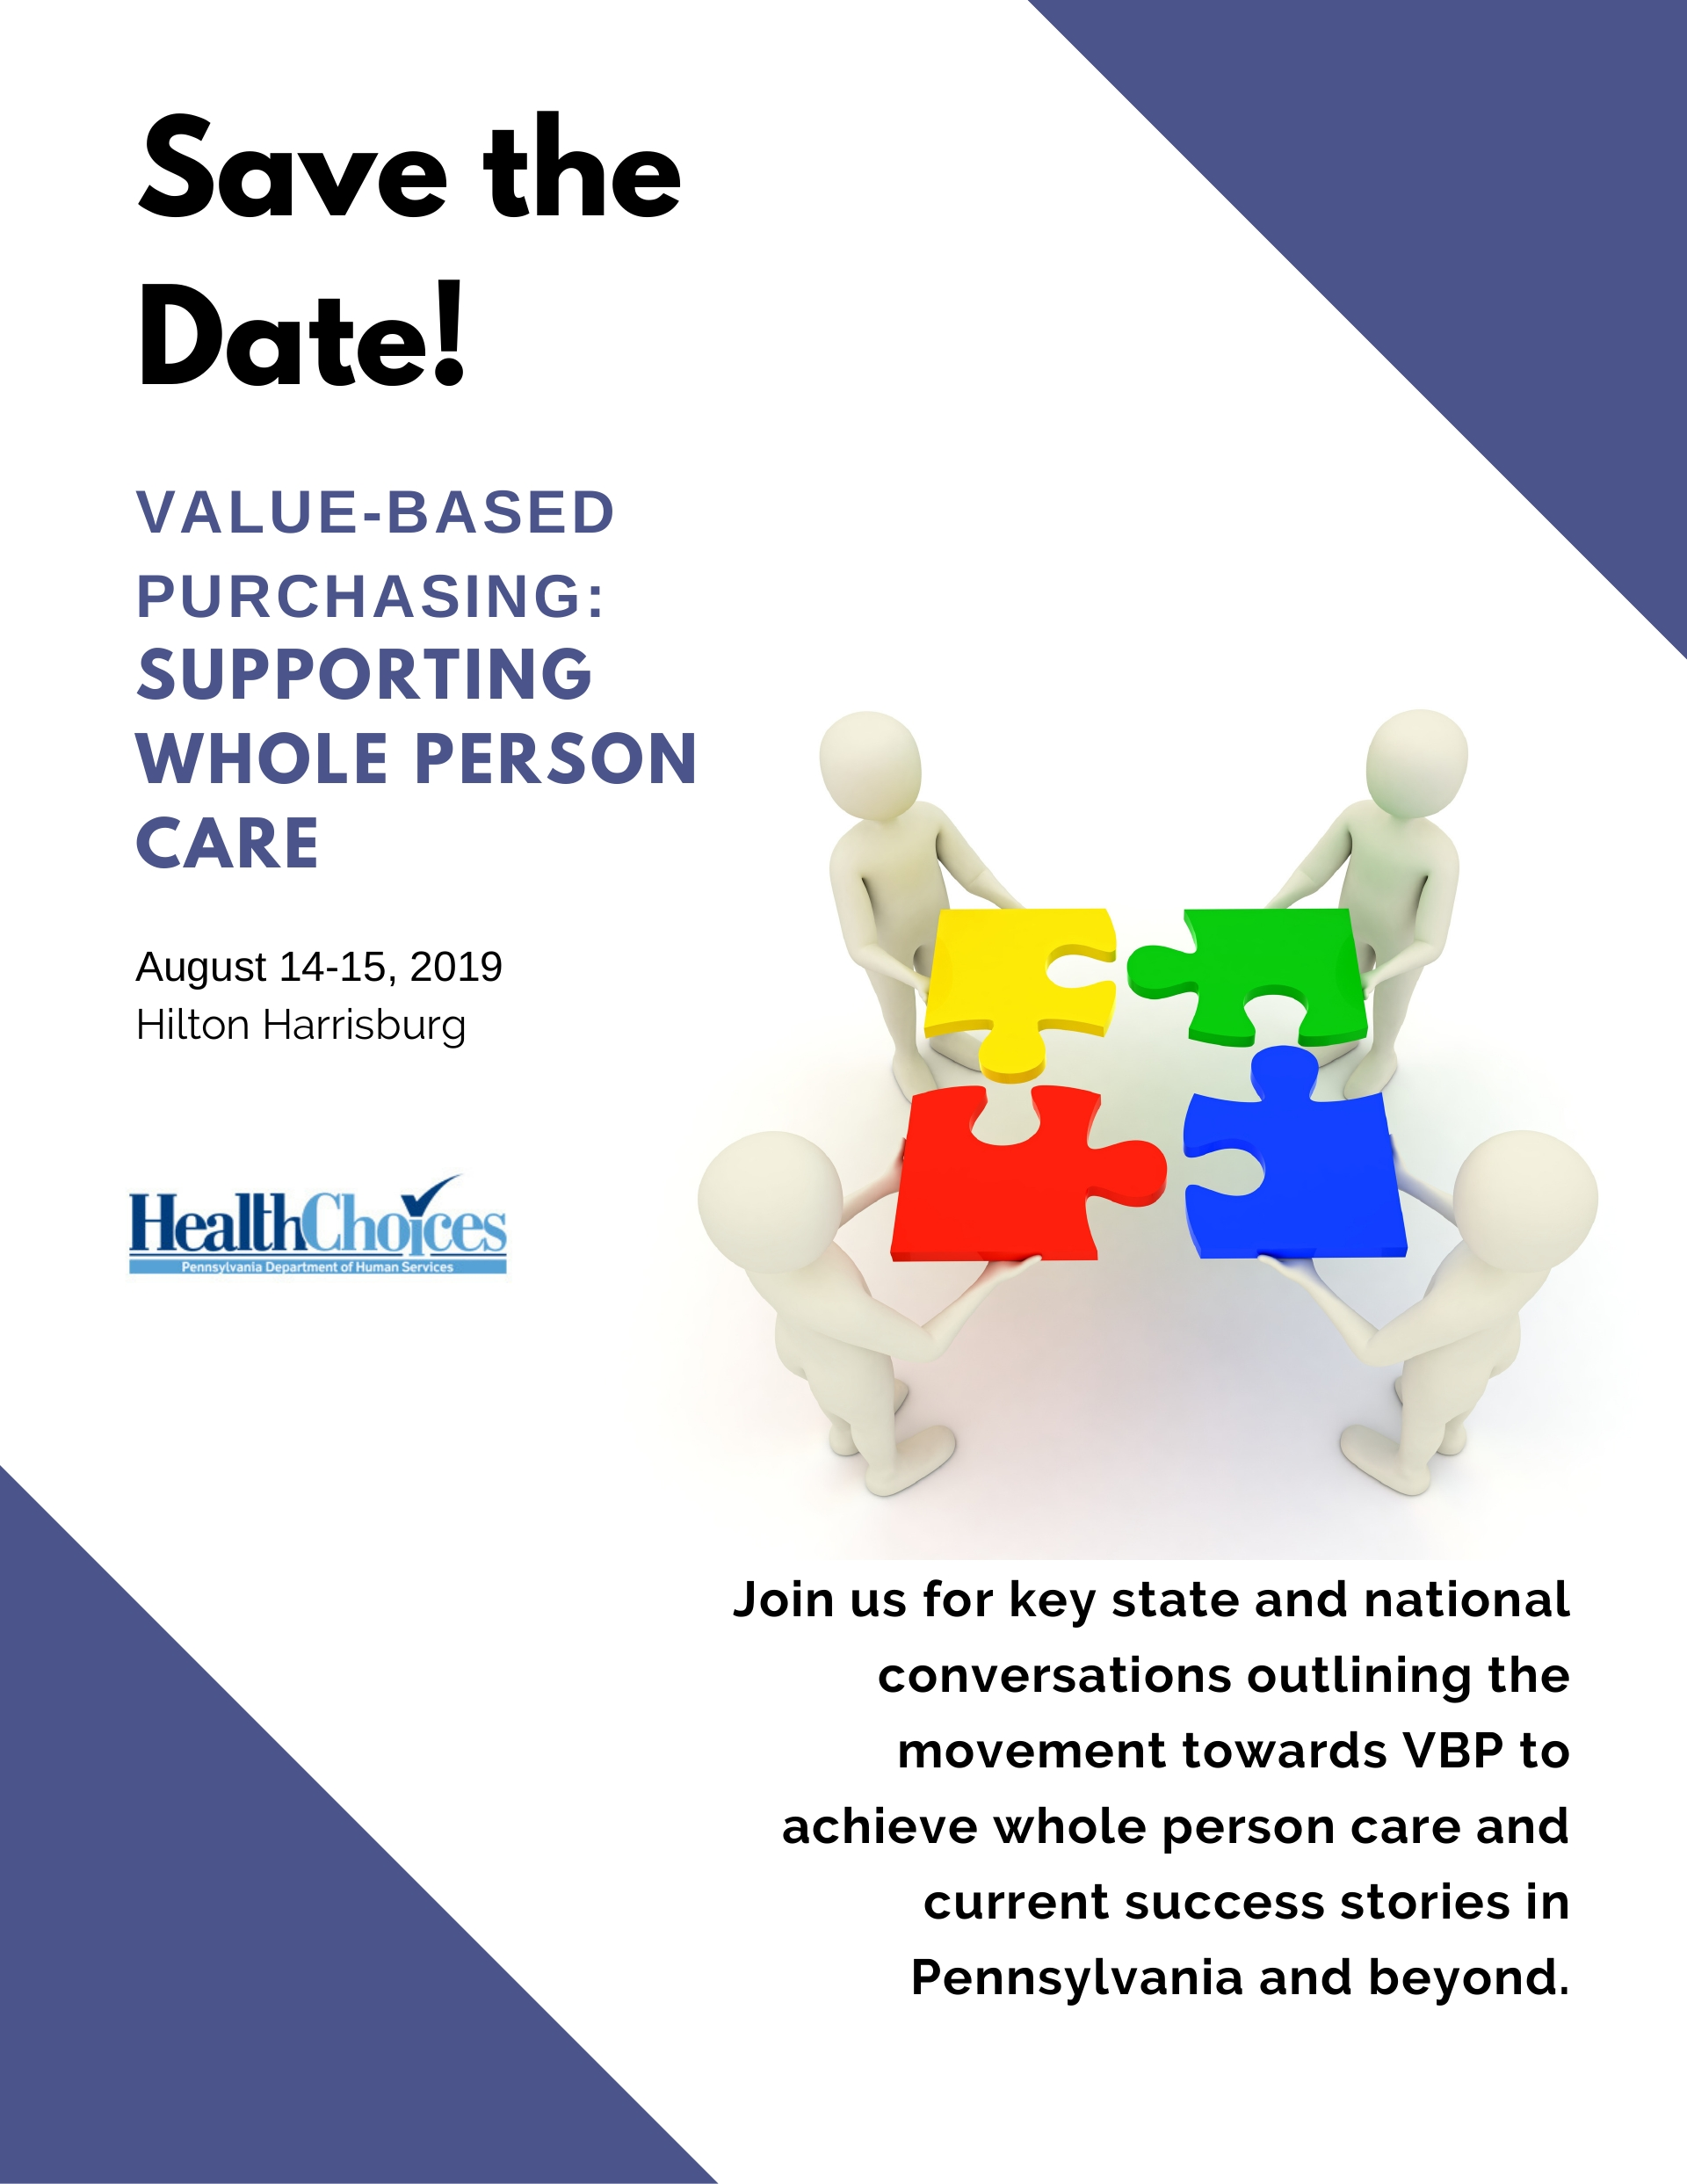 CONFERENCE VALUE-BASED PURCHASING: SUPPORTING WHOLE PERSON CARE